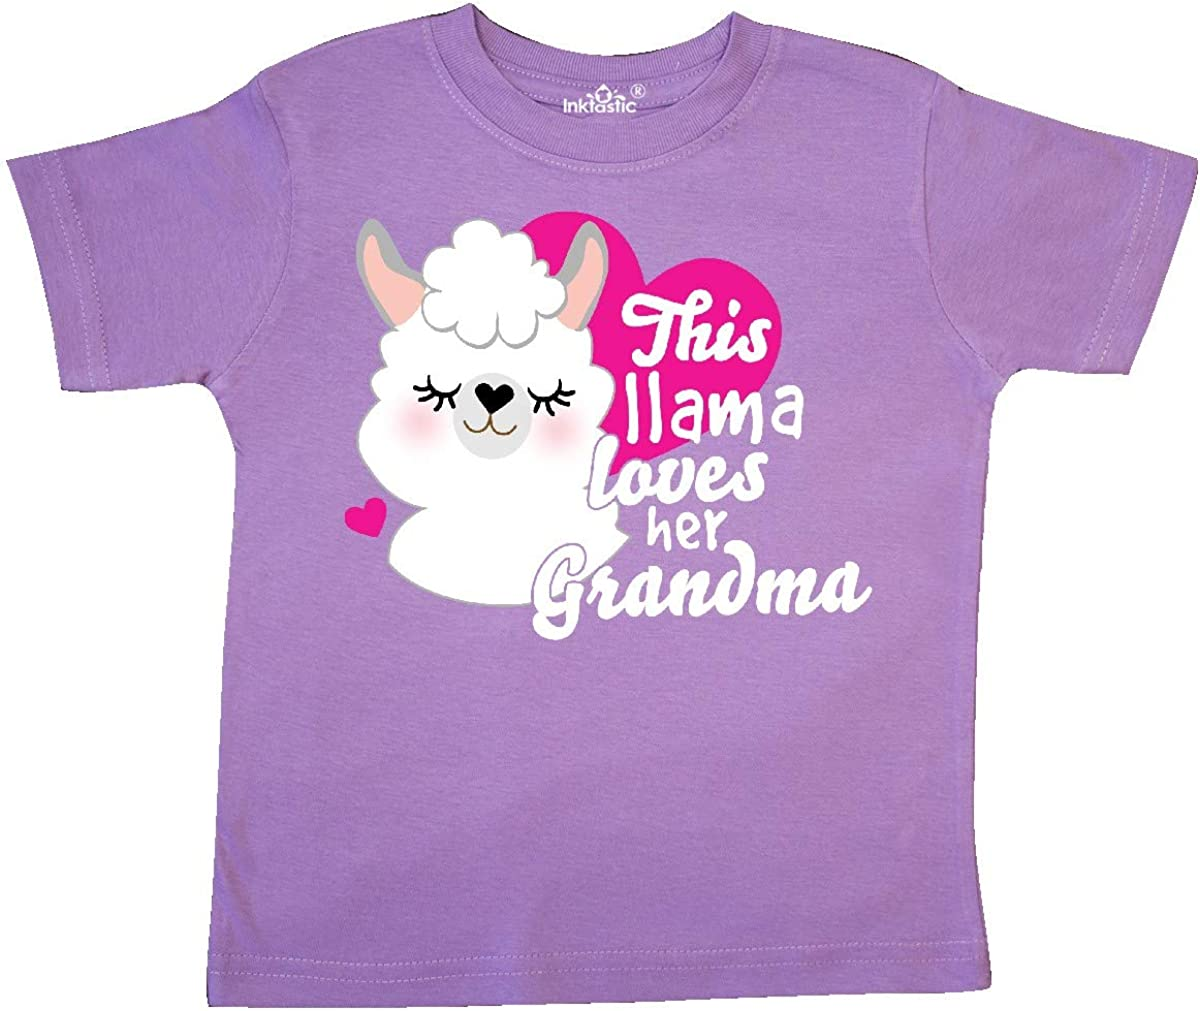 inktastic Valentines Day This Llama Loves Her Grandma Toddler T-Shirt